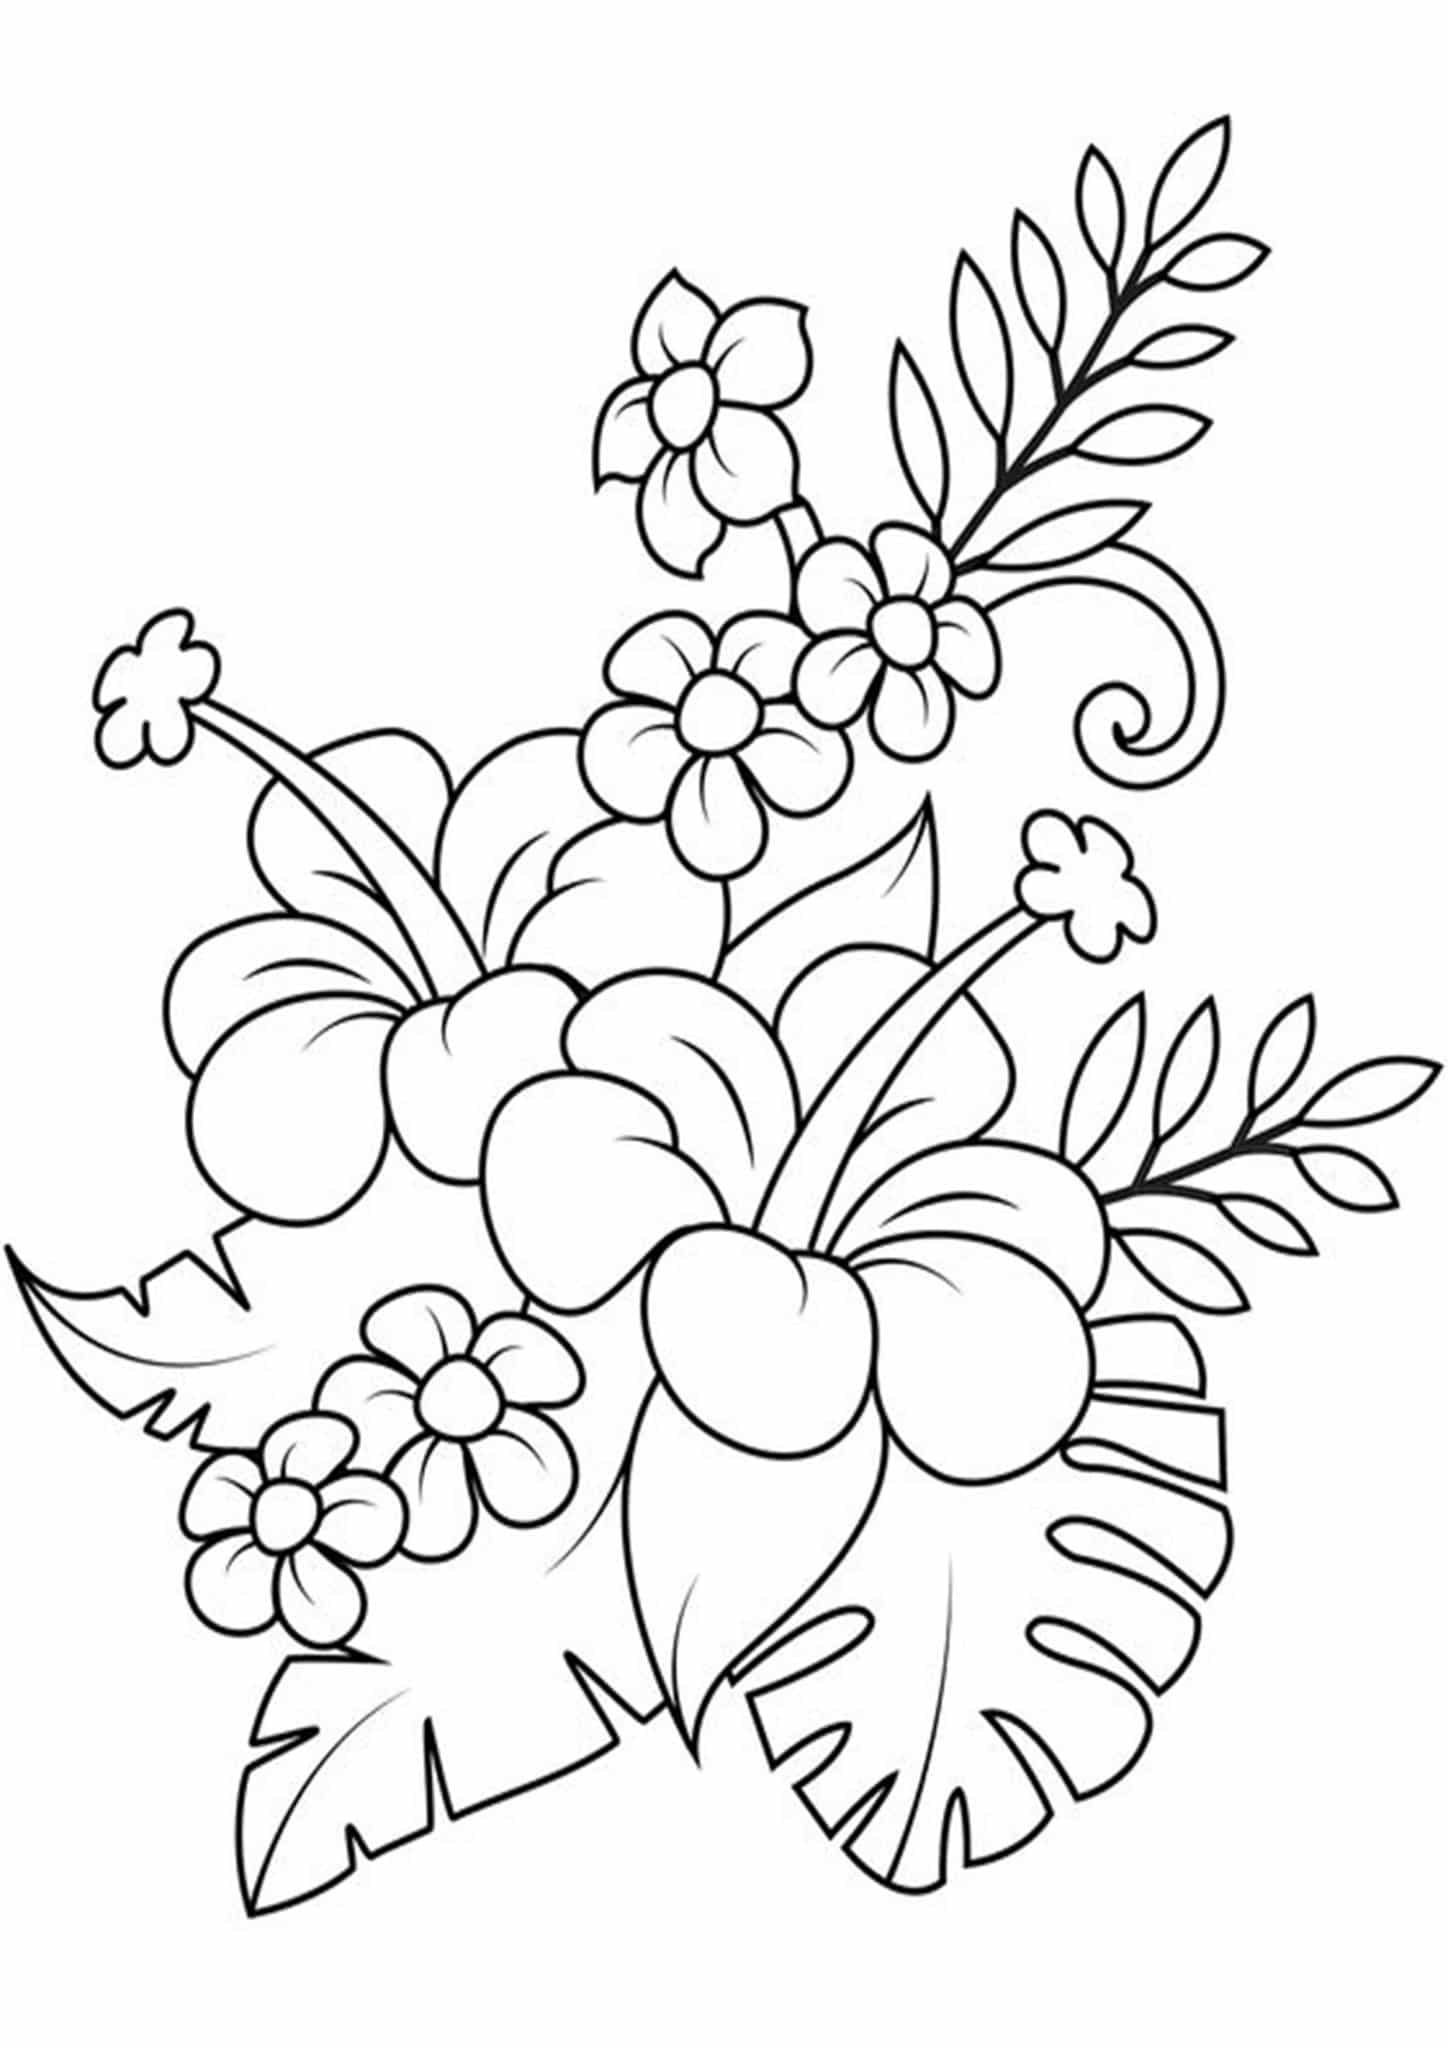 Free & Easy To Print Flower Coloring Pages - Tulamama